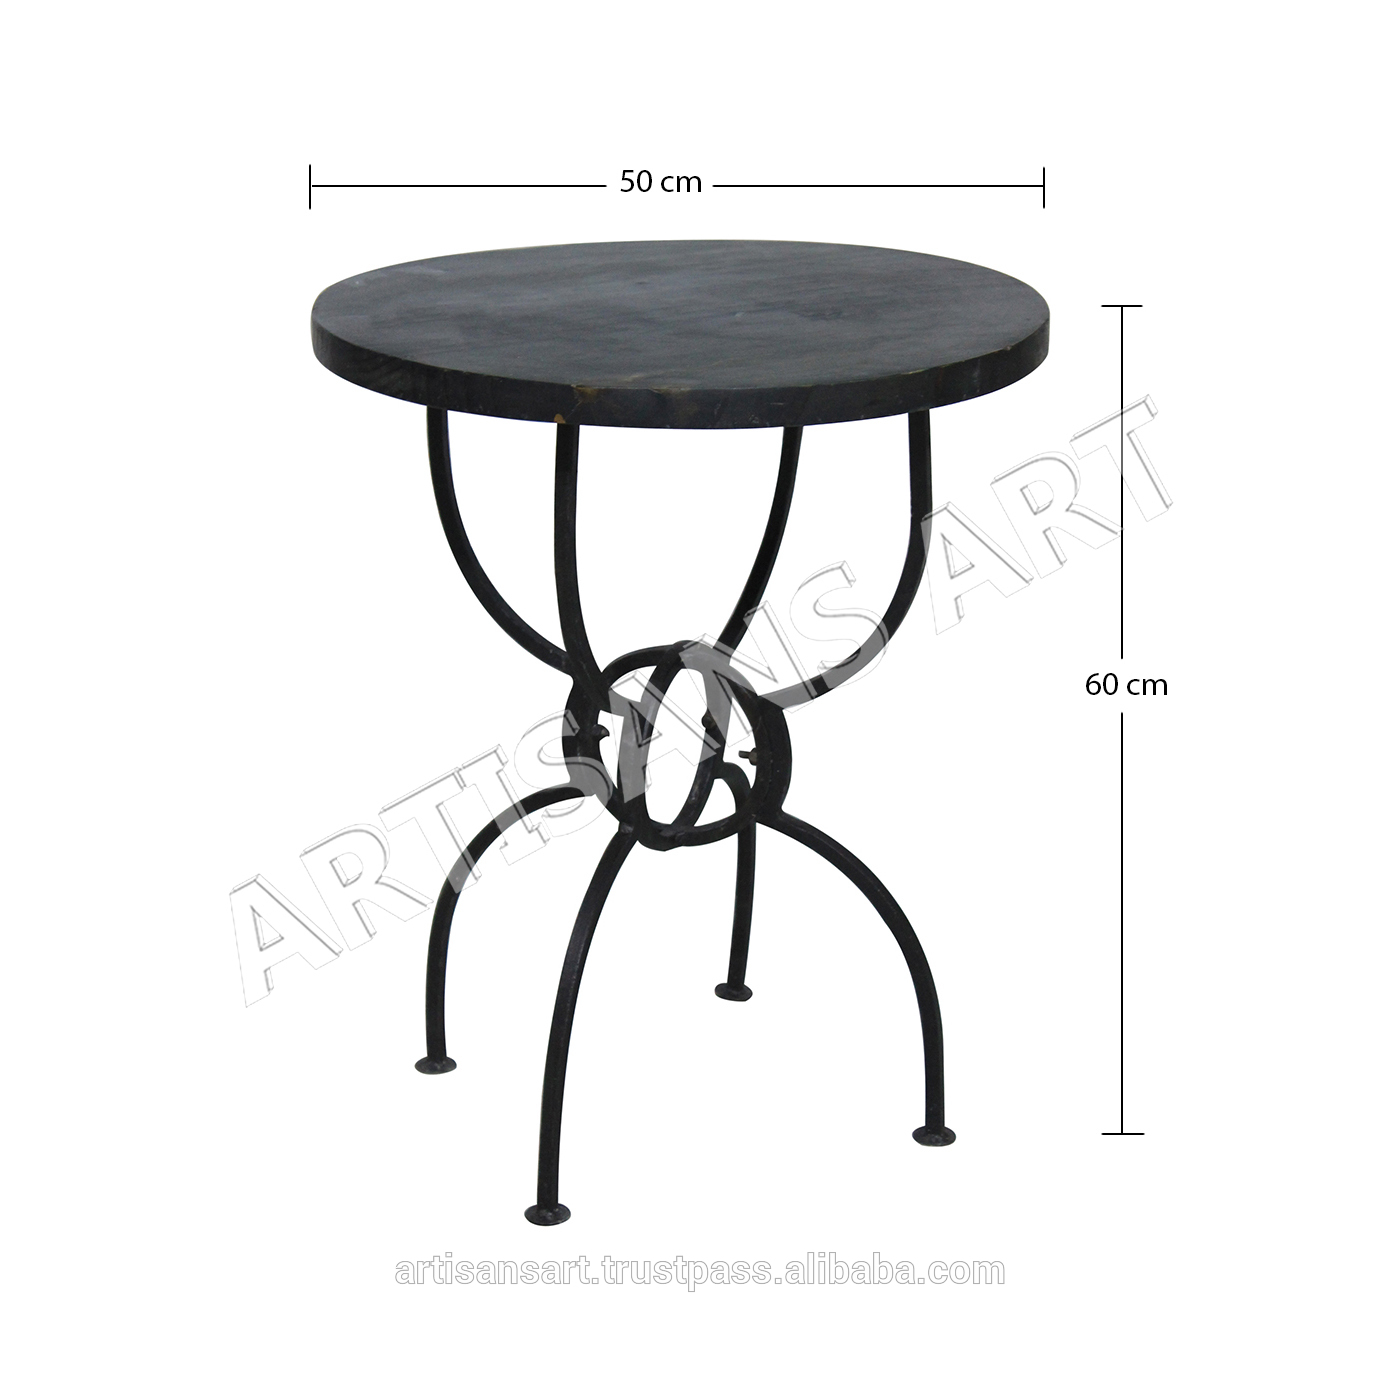 rustic industrial round side table harper wood and metal accent antique patio umbrella tablecloth for small vintage ethan allen furniture dining room light fixtures coffee